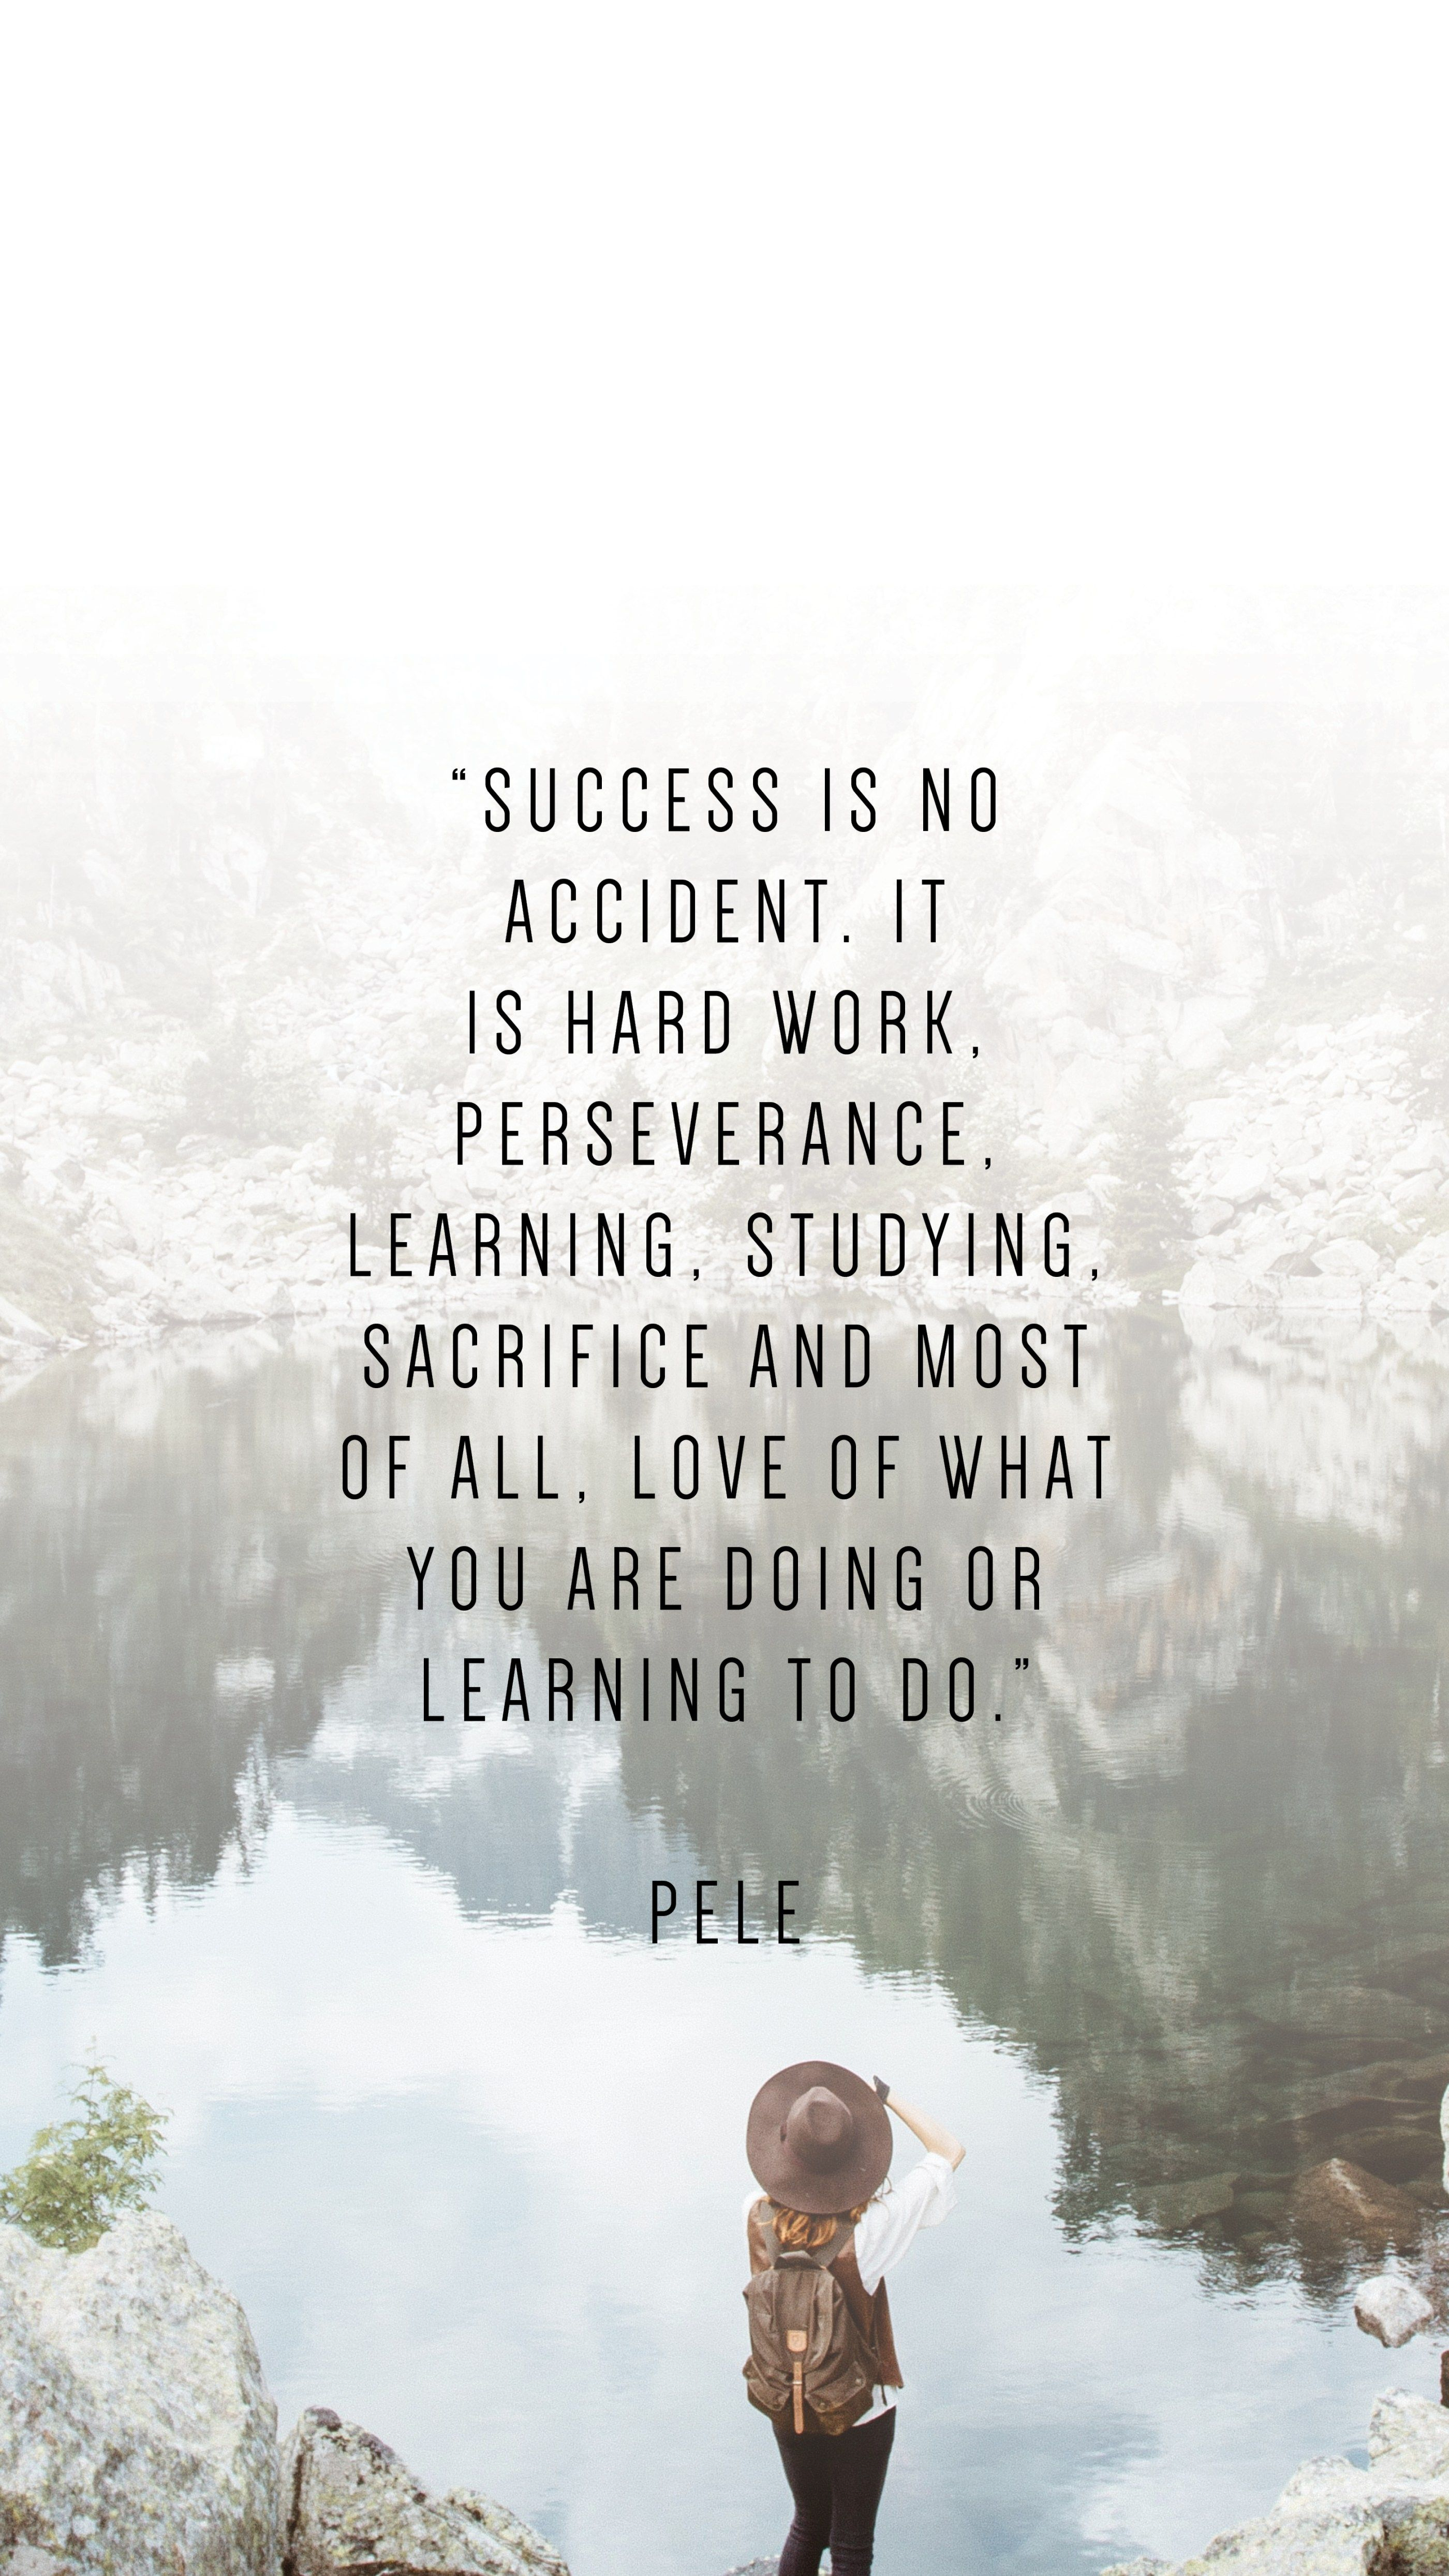 30 Phone Wallpapers To Inspire Pele Quotes Life Quotes Work Quotes